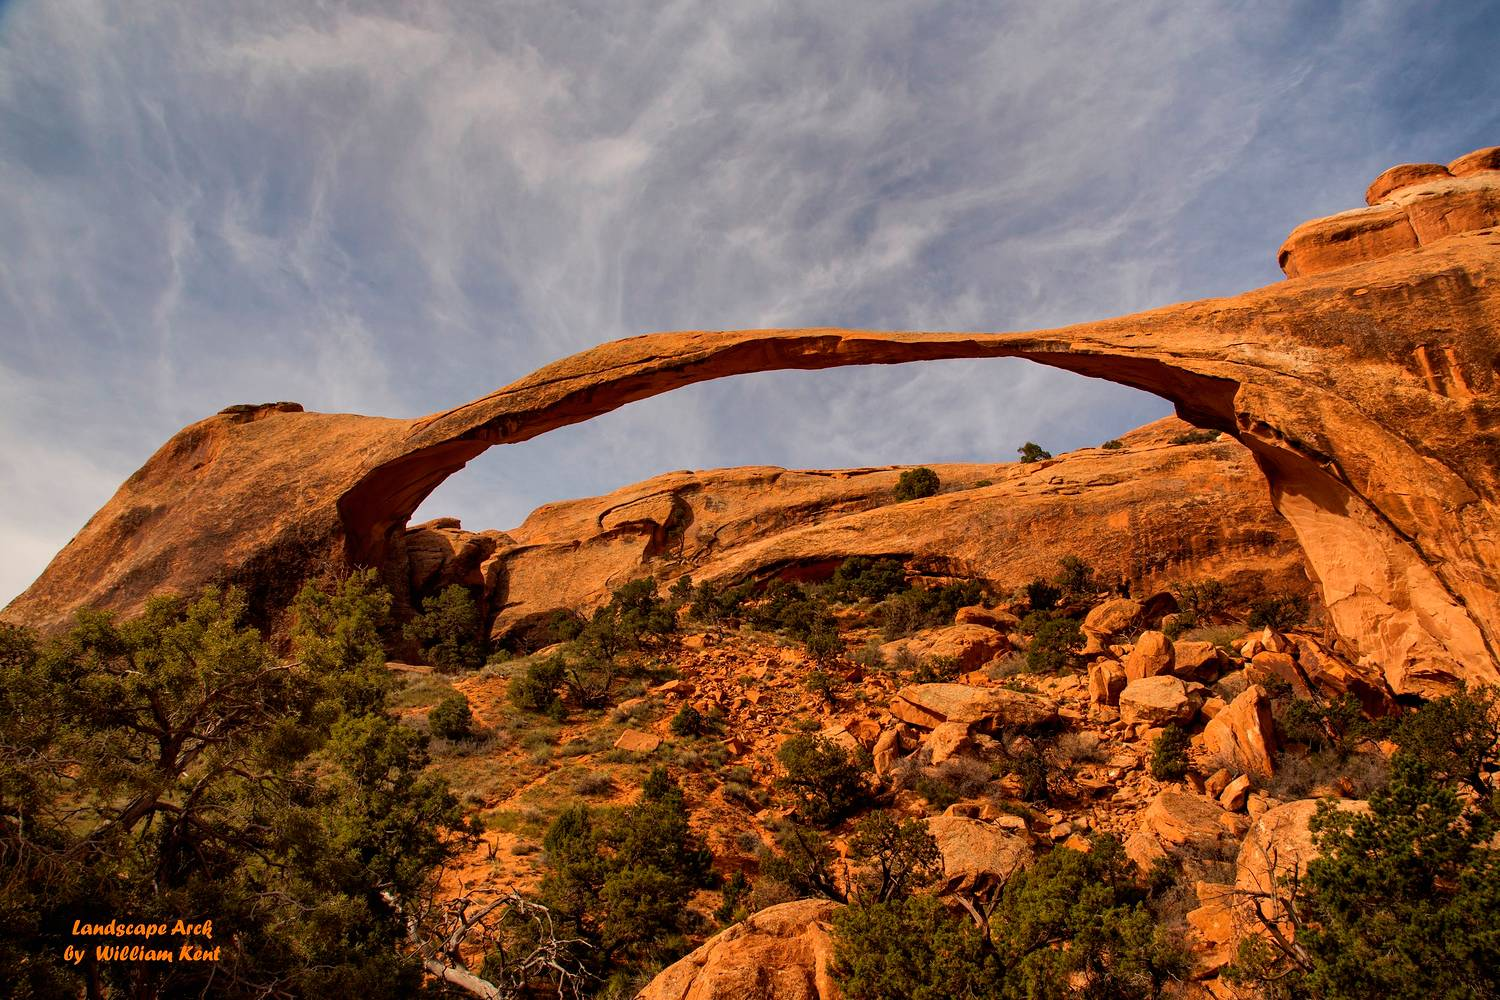 Landscape Arch by William Kent